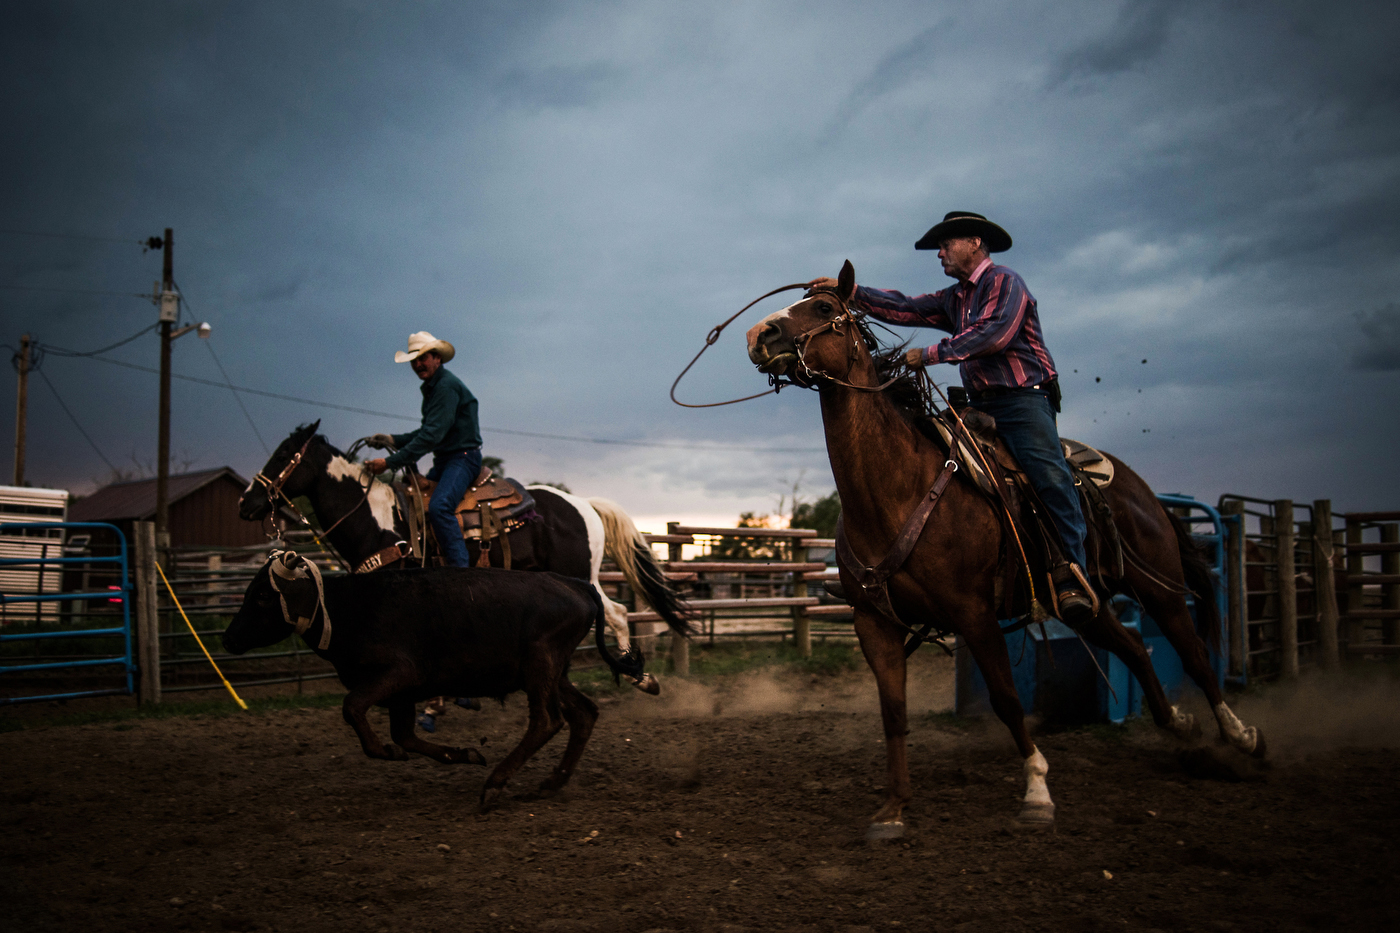 """45º31'58.9""""N, 102º15'19.0""""W. 121 miles from the nearest McDonald's. Scott Storm swings a rope as he practices team roping with his friend Kenny Kocer at Kocer's ranch in Meadow, SD. Storm was known as a great roper on teams years ago but stopped after he was married; he didn't rope again until his son was old enough to start."""